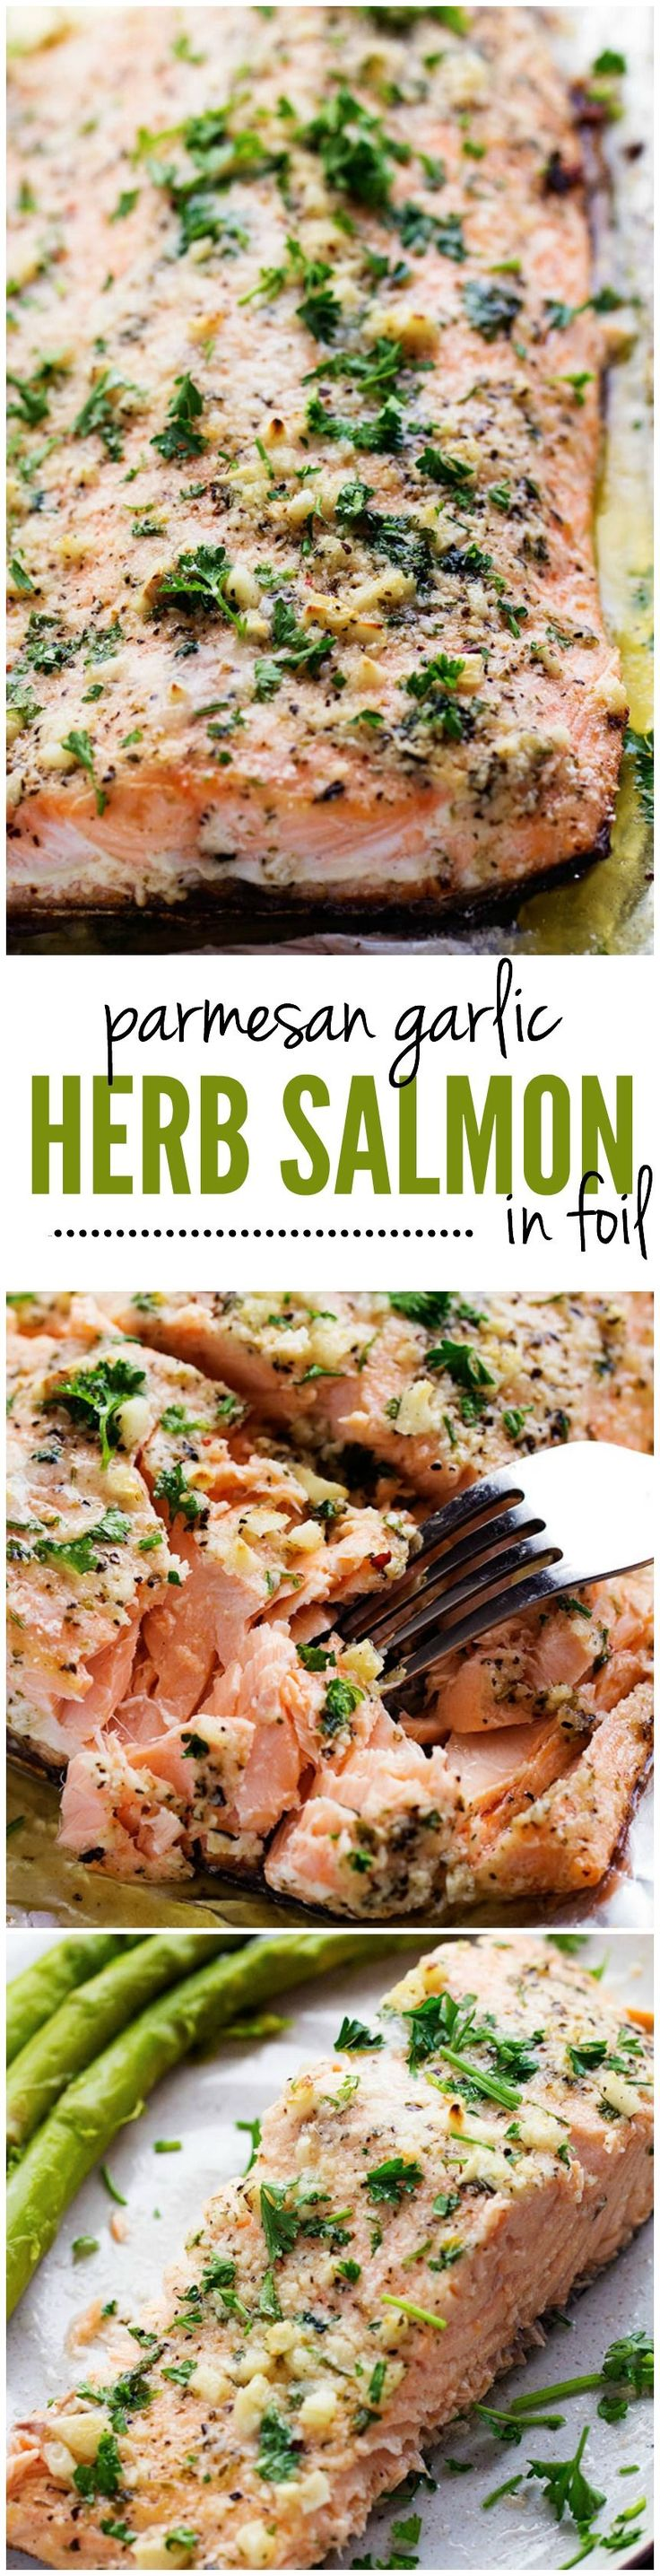 Parmesan Garlic Herb Salmon in Foil